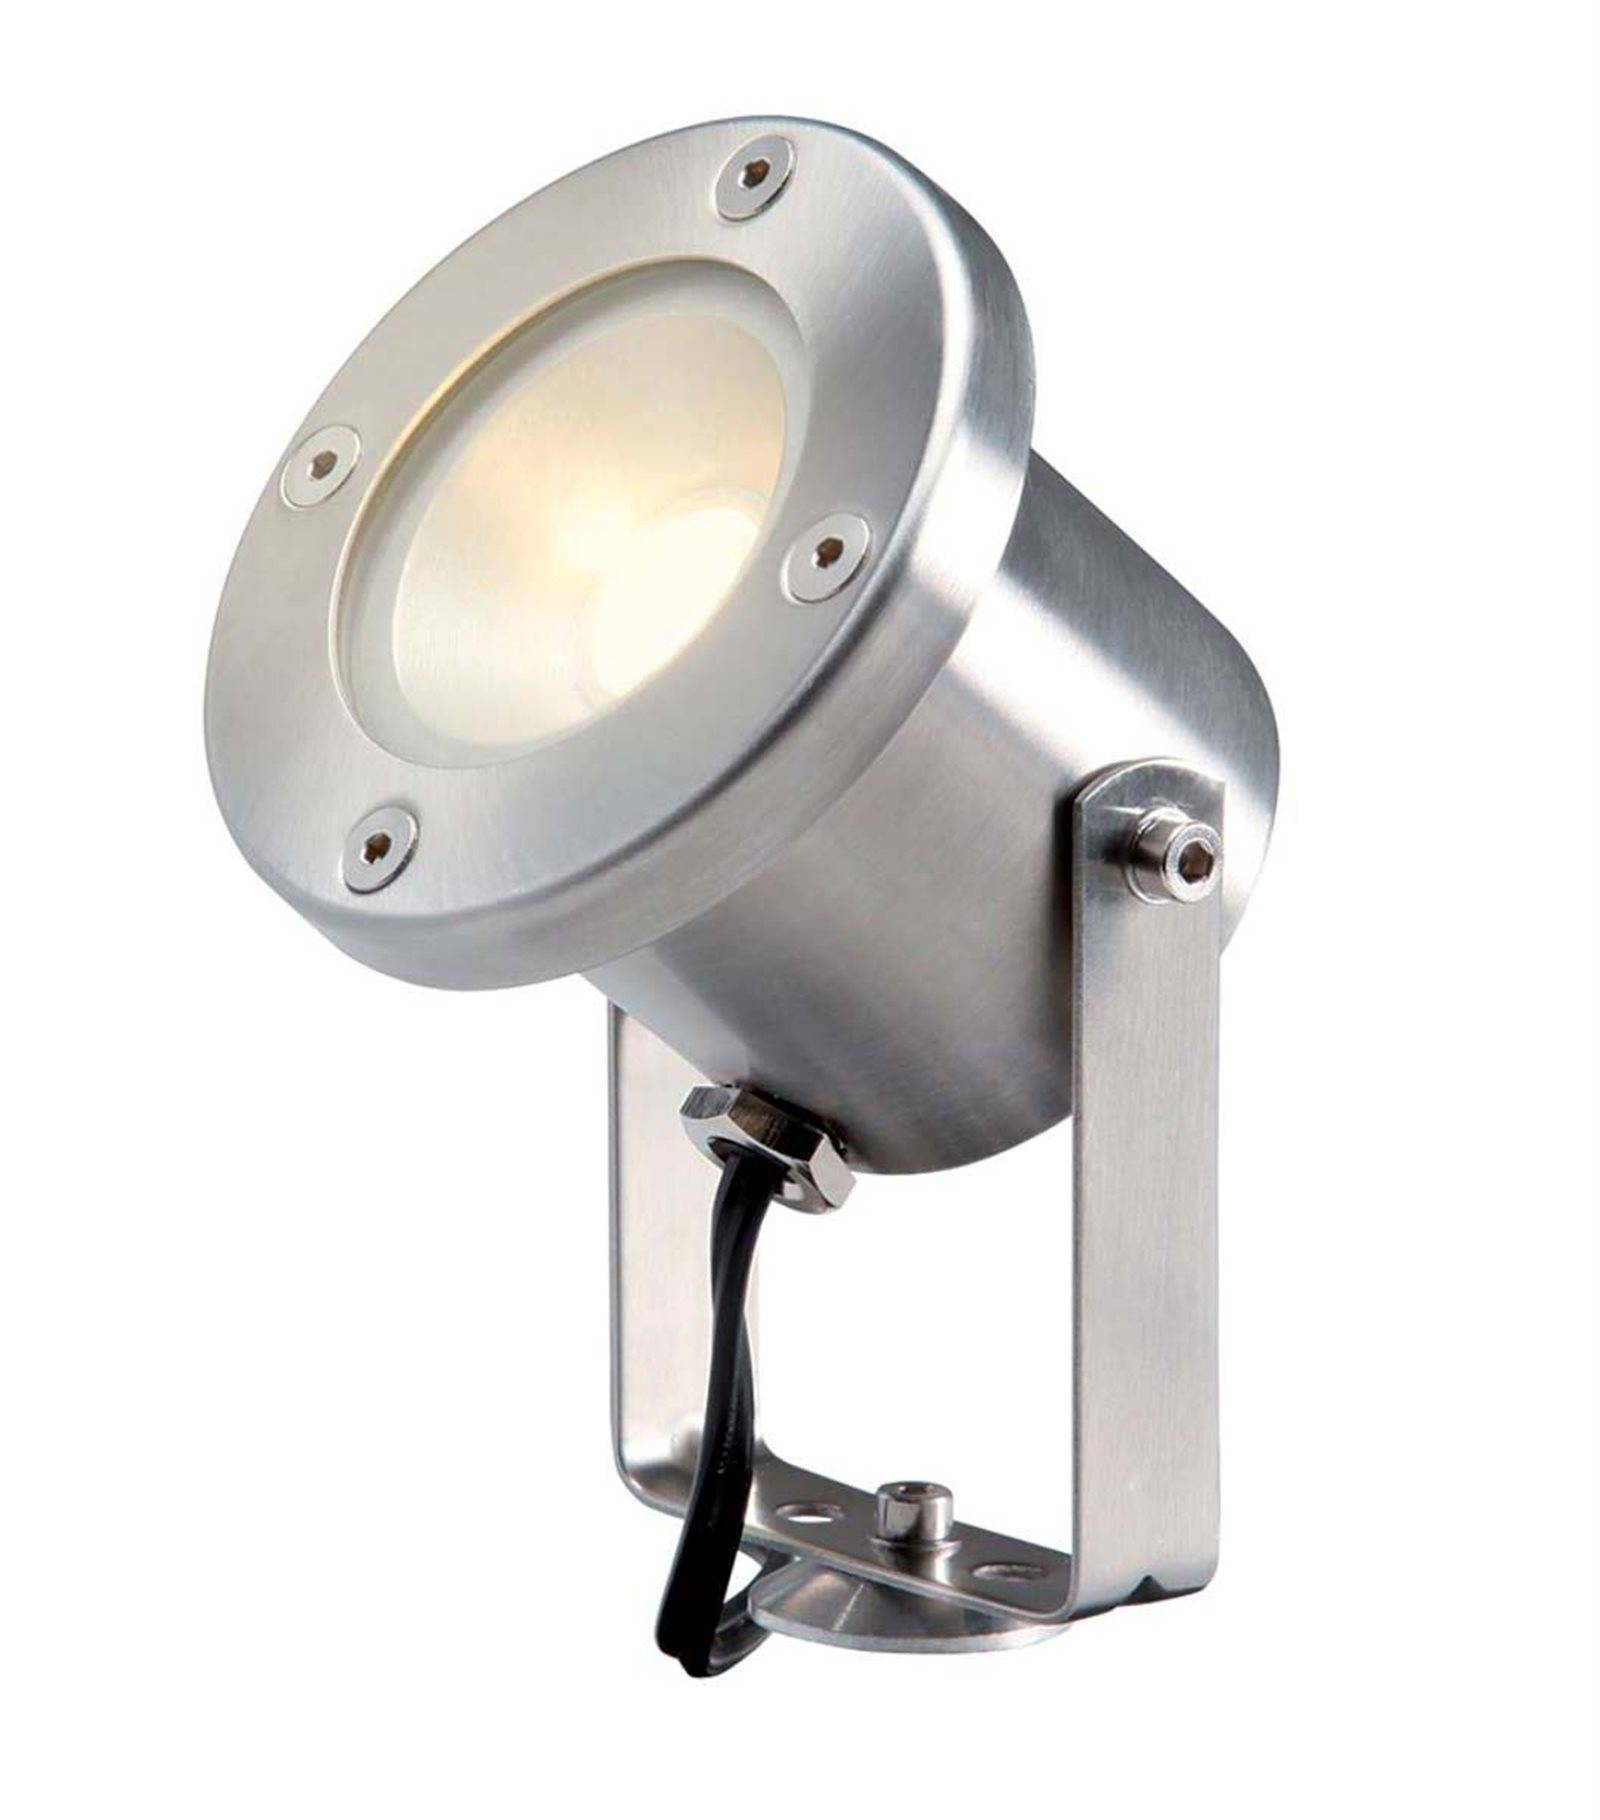 Garden Lights Spot projecteur à piquer ou visser CATALPA 3W GU5.3 MR16 IP44 Blanc Chaud Orientable éxterieur Garden lights ampoule fourni